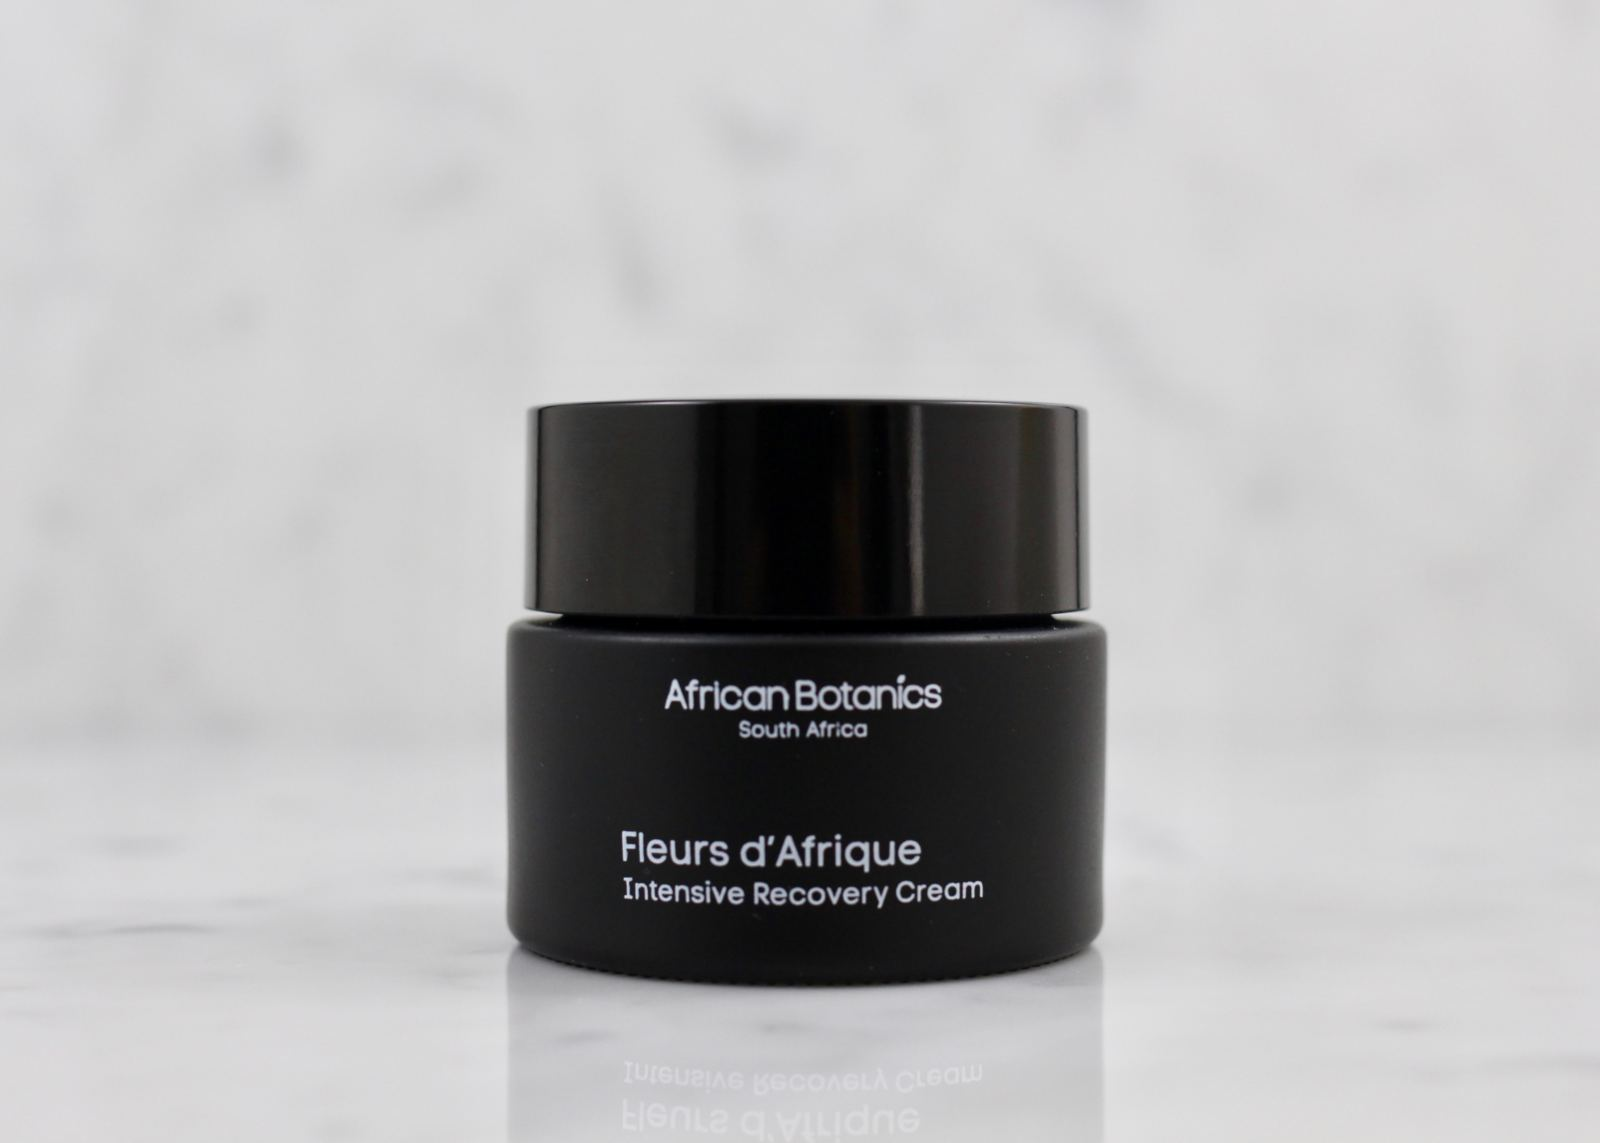 Product Review: African Botanics Fleurs d'Afrique Intensive Recovery Cream